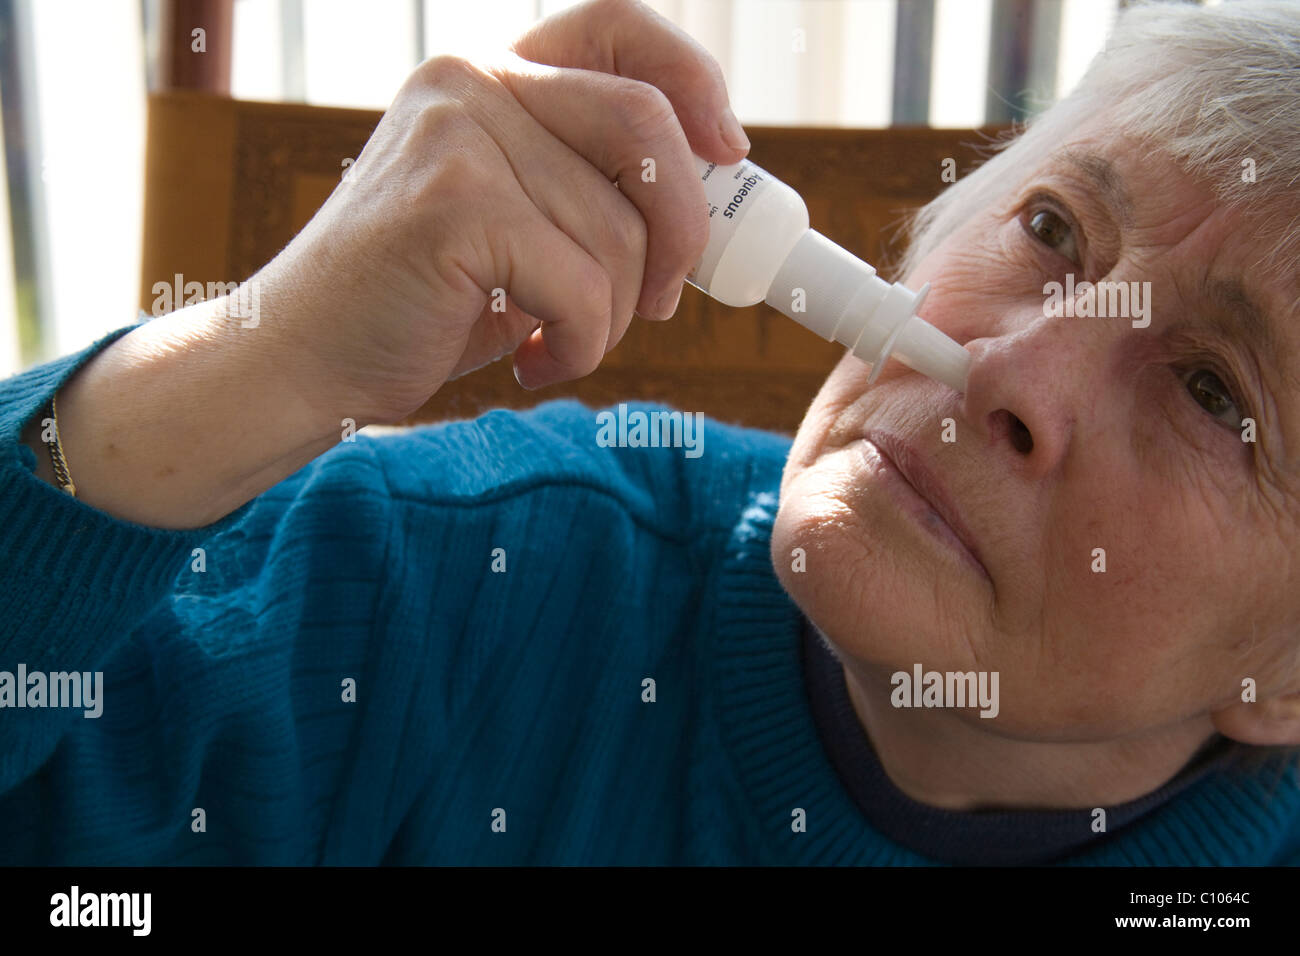 Close up elderly woman using a nasal spray to relieve symptoms of hay fever Stock Photo